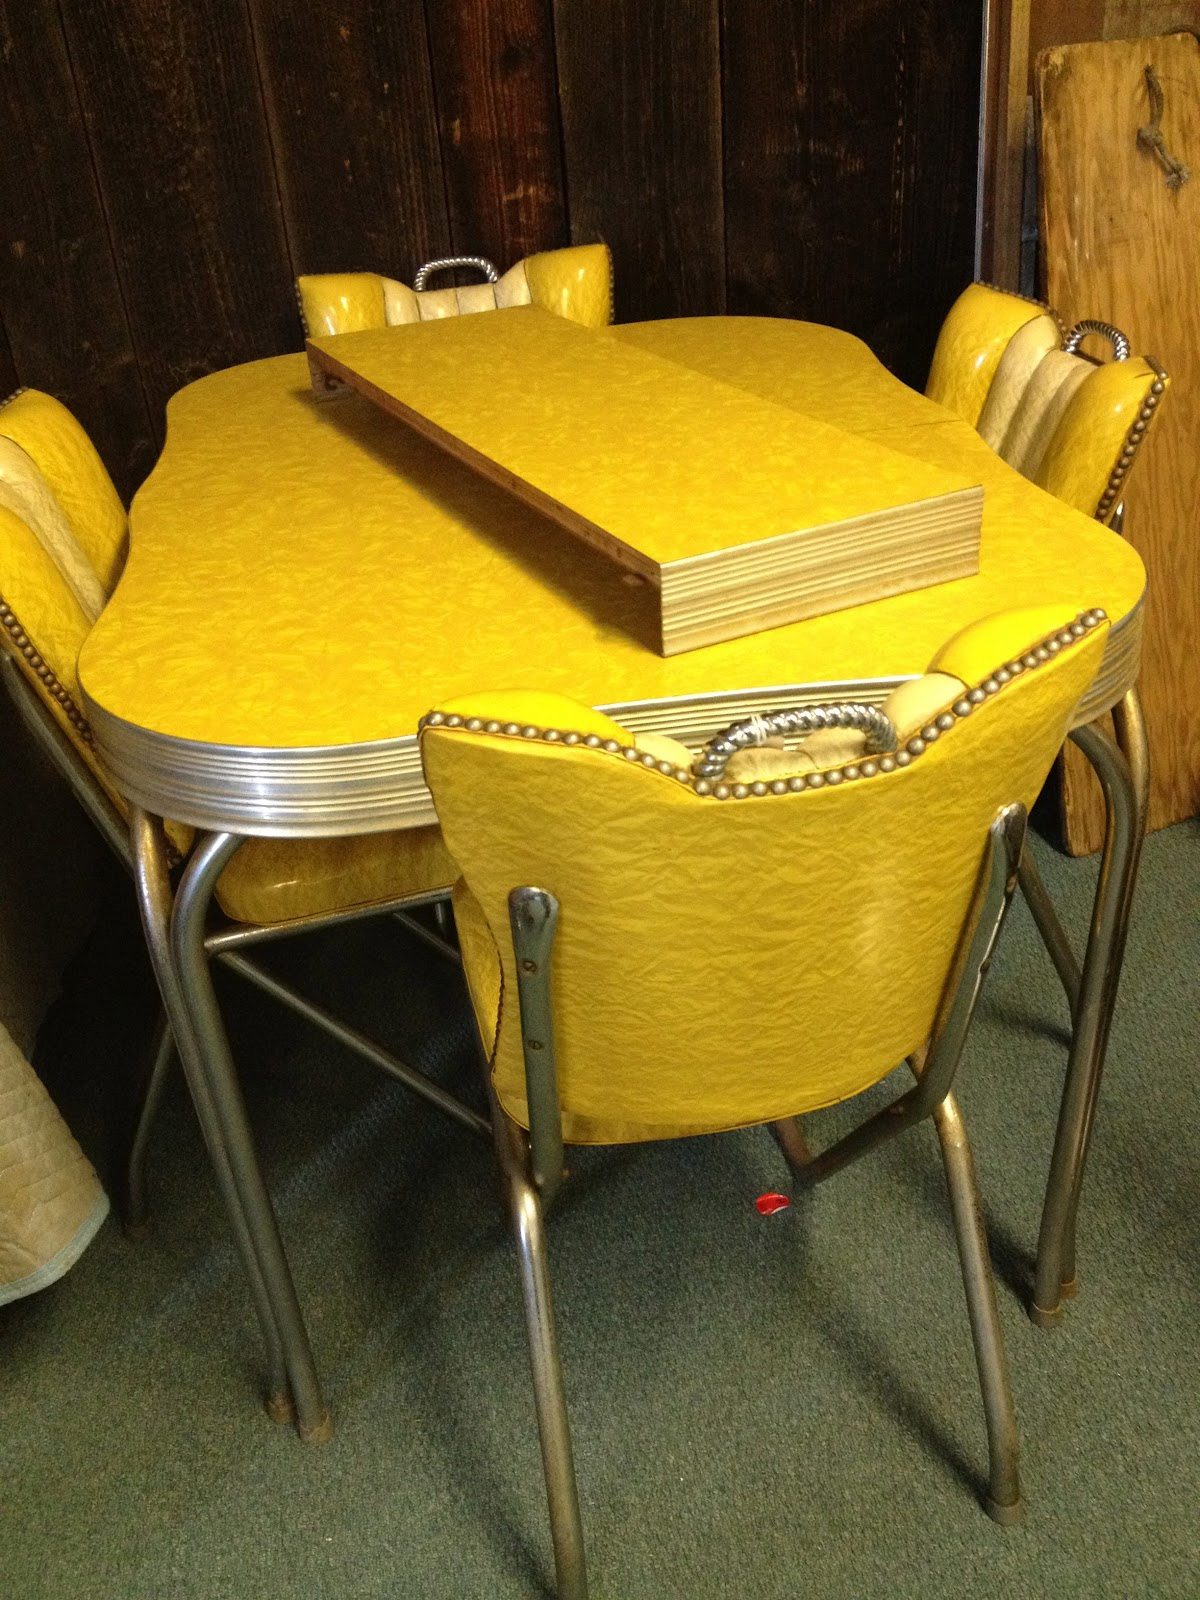 Cleaning Up Chrome Legs On Formica And Chrome Vintage Kitchen Tables And Chairs & C. Dianne Zweig - Kitsch \u0027n Stuff: Cleaning Up Chrome Legs On ...